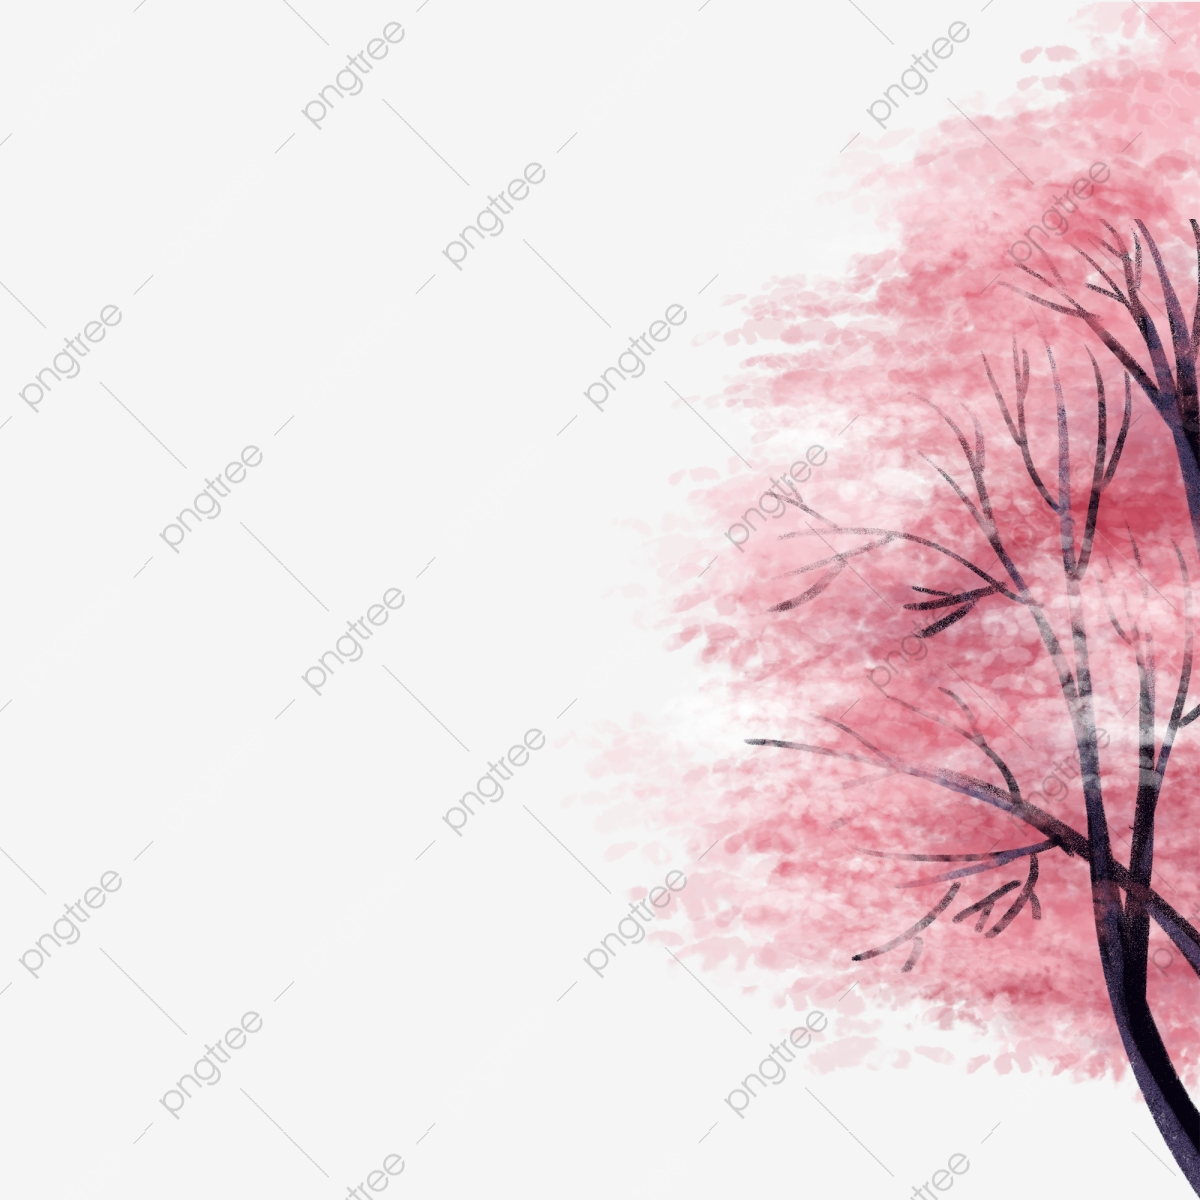 THƠ ĐỜI PHẠM BÁ CHIỂU - Page 3 Pngtree-valentines-tree-wind-blown-trees-small-tree-powder-erotic-tree-png-image_3980706